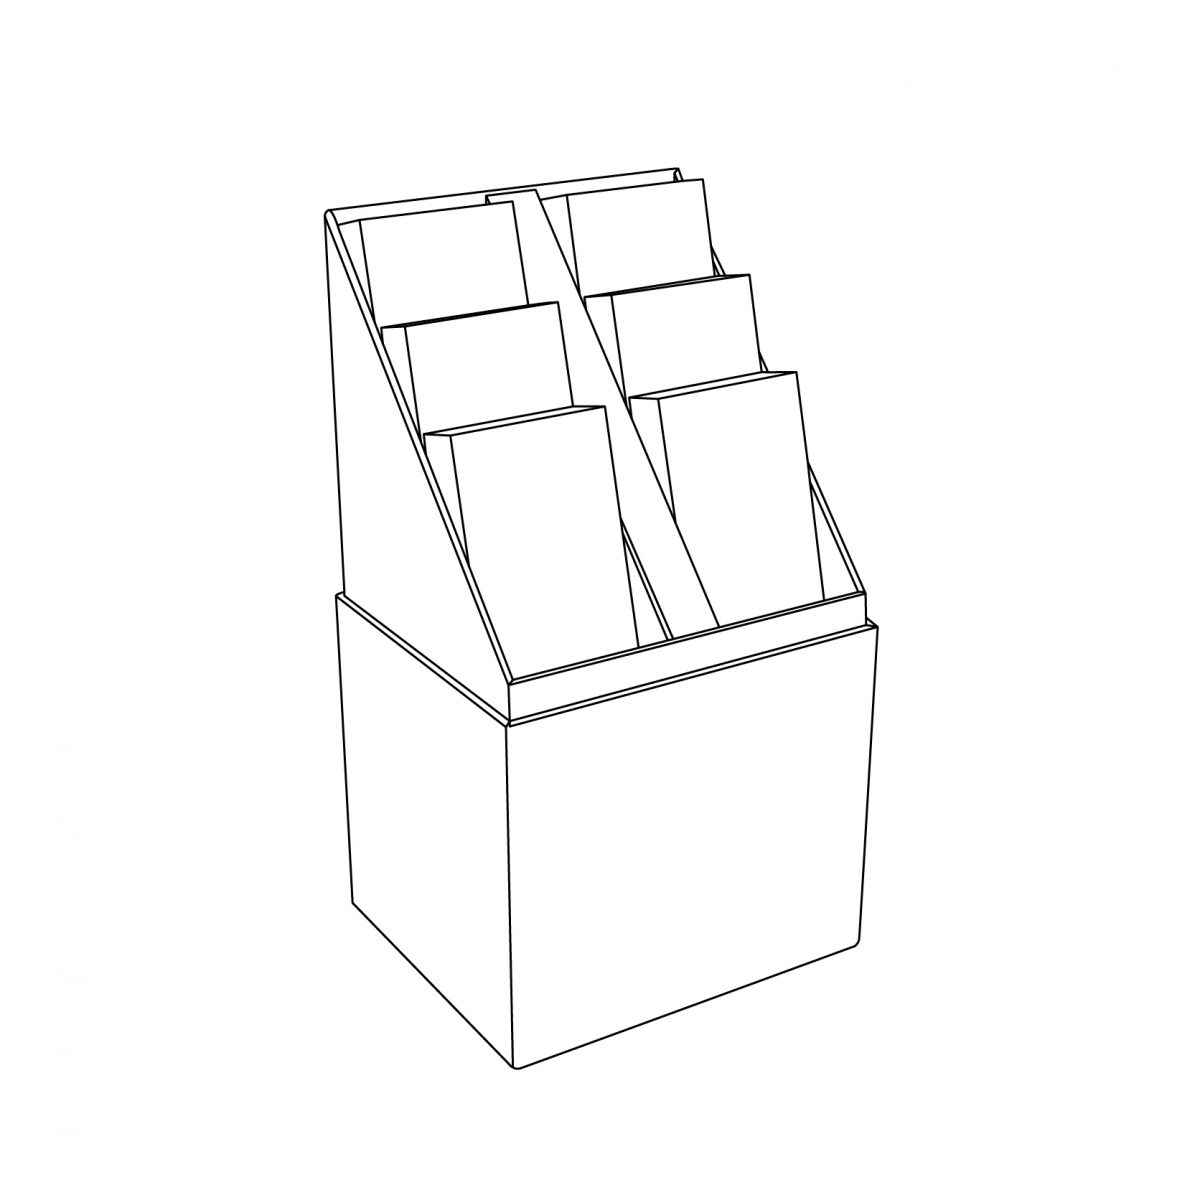 Cardboard floor display quart pallet with a display and 3 shelves - outline